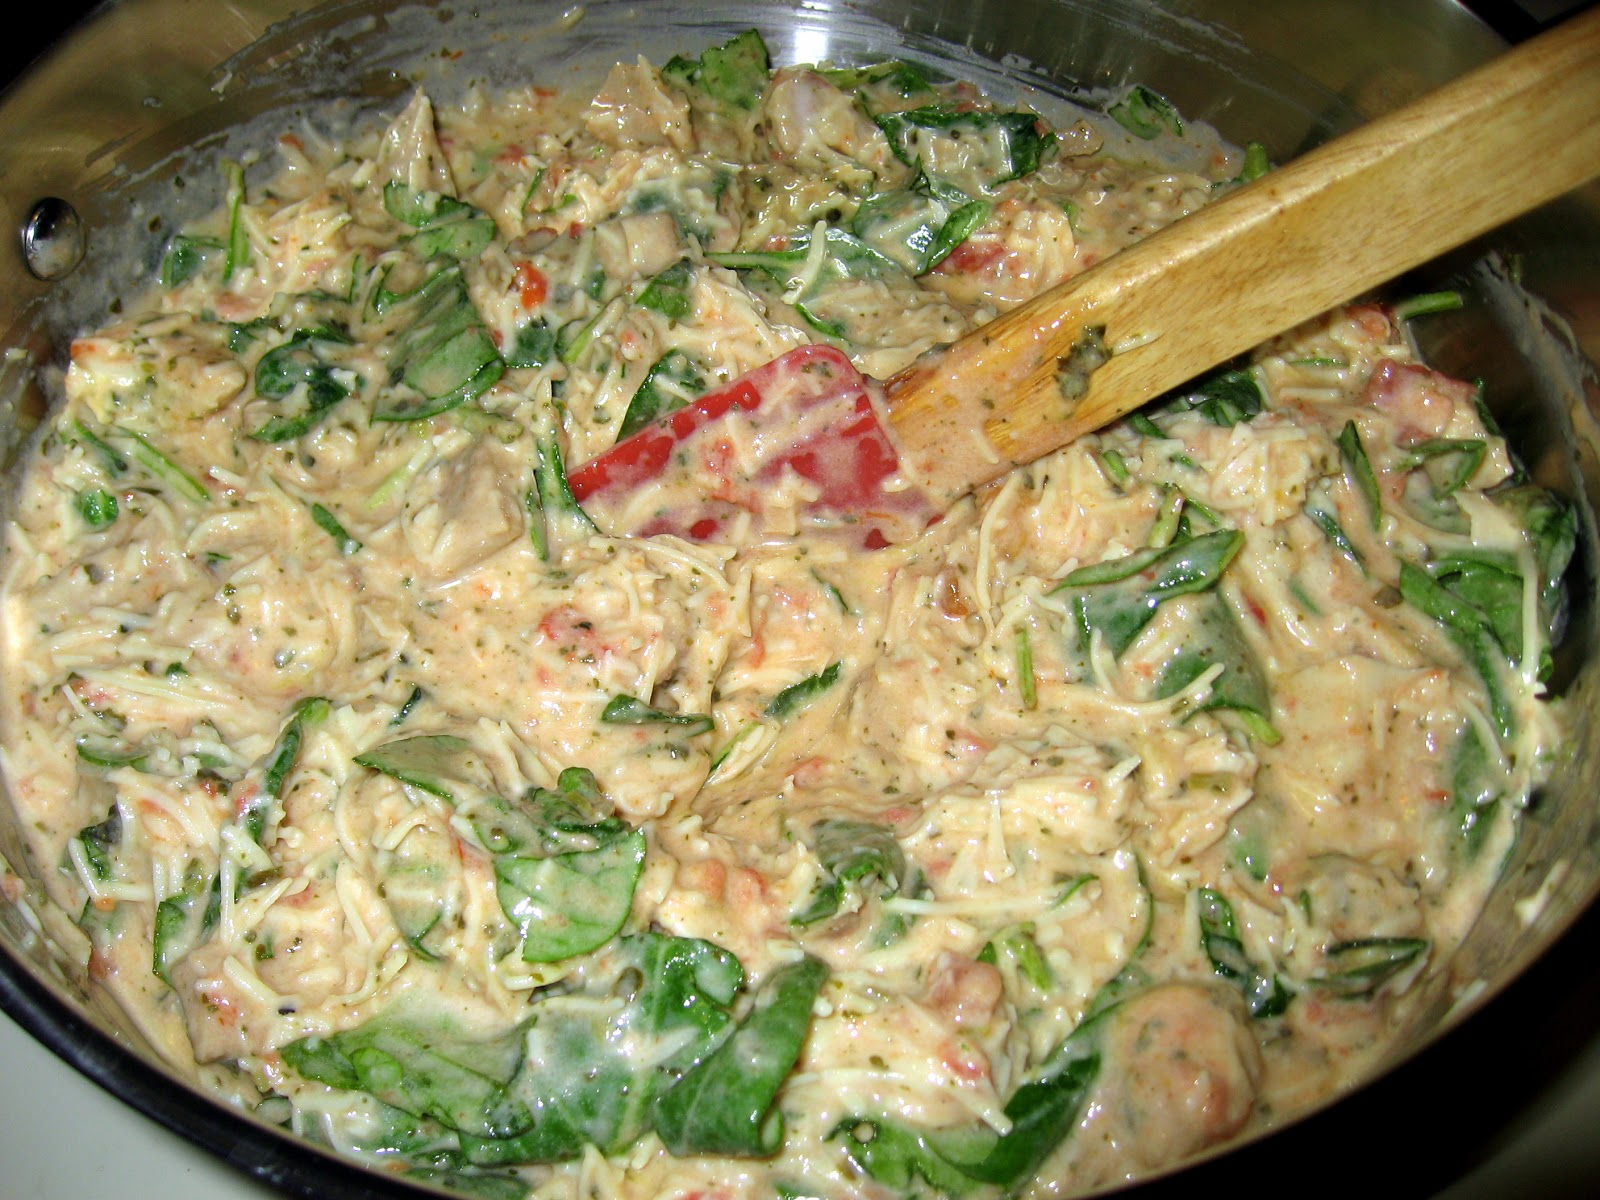 Pesto chicken alfredo freezer meal the virtuous wife pesto chicken alfredo freezer meal forumfinder Images